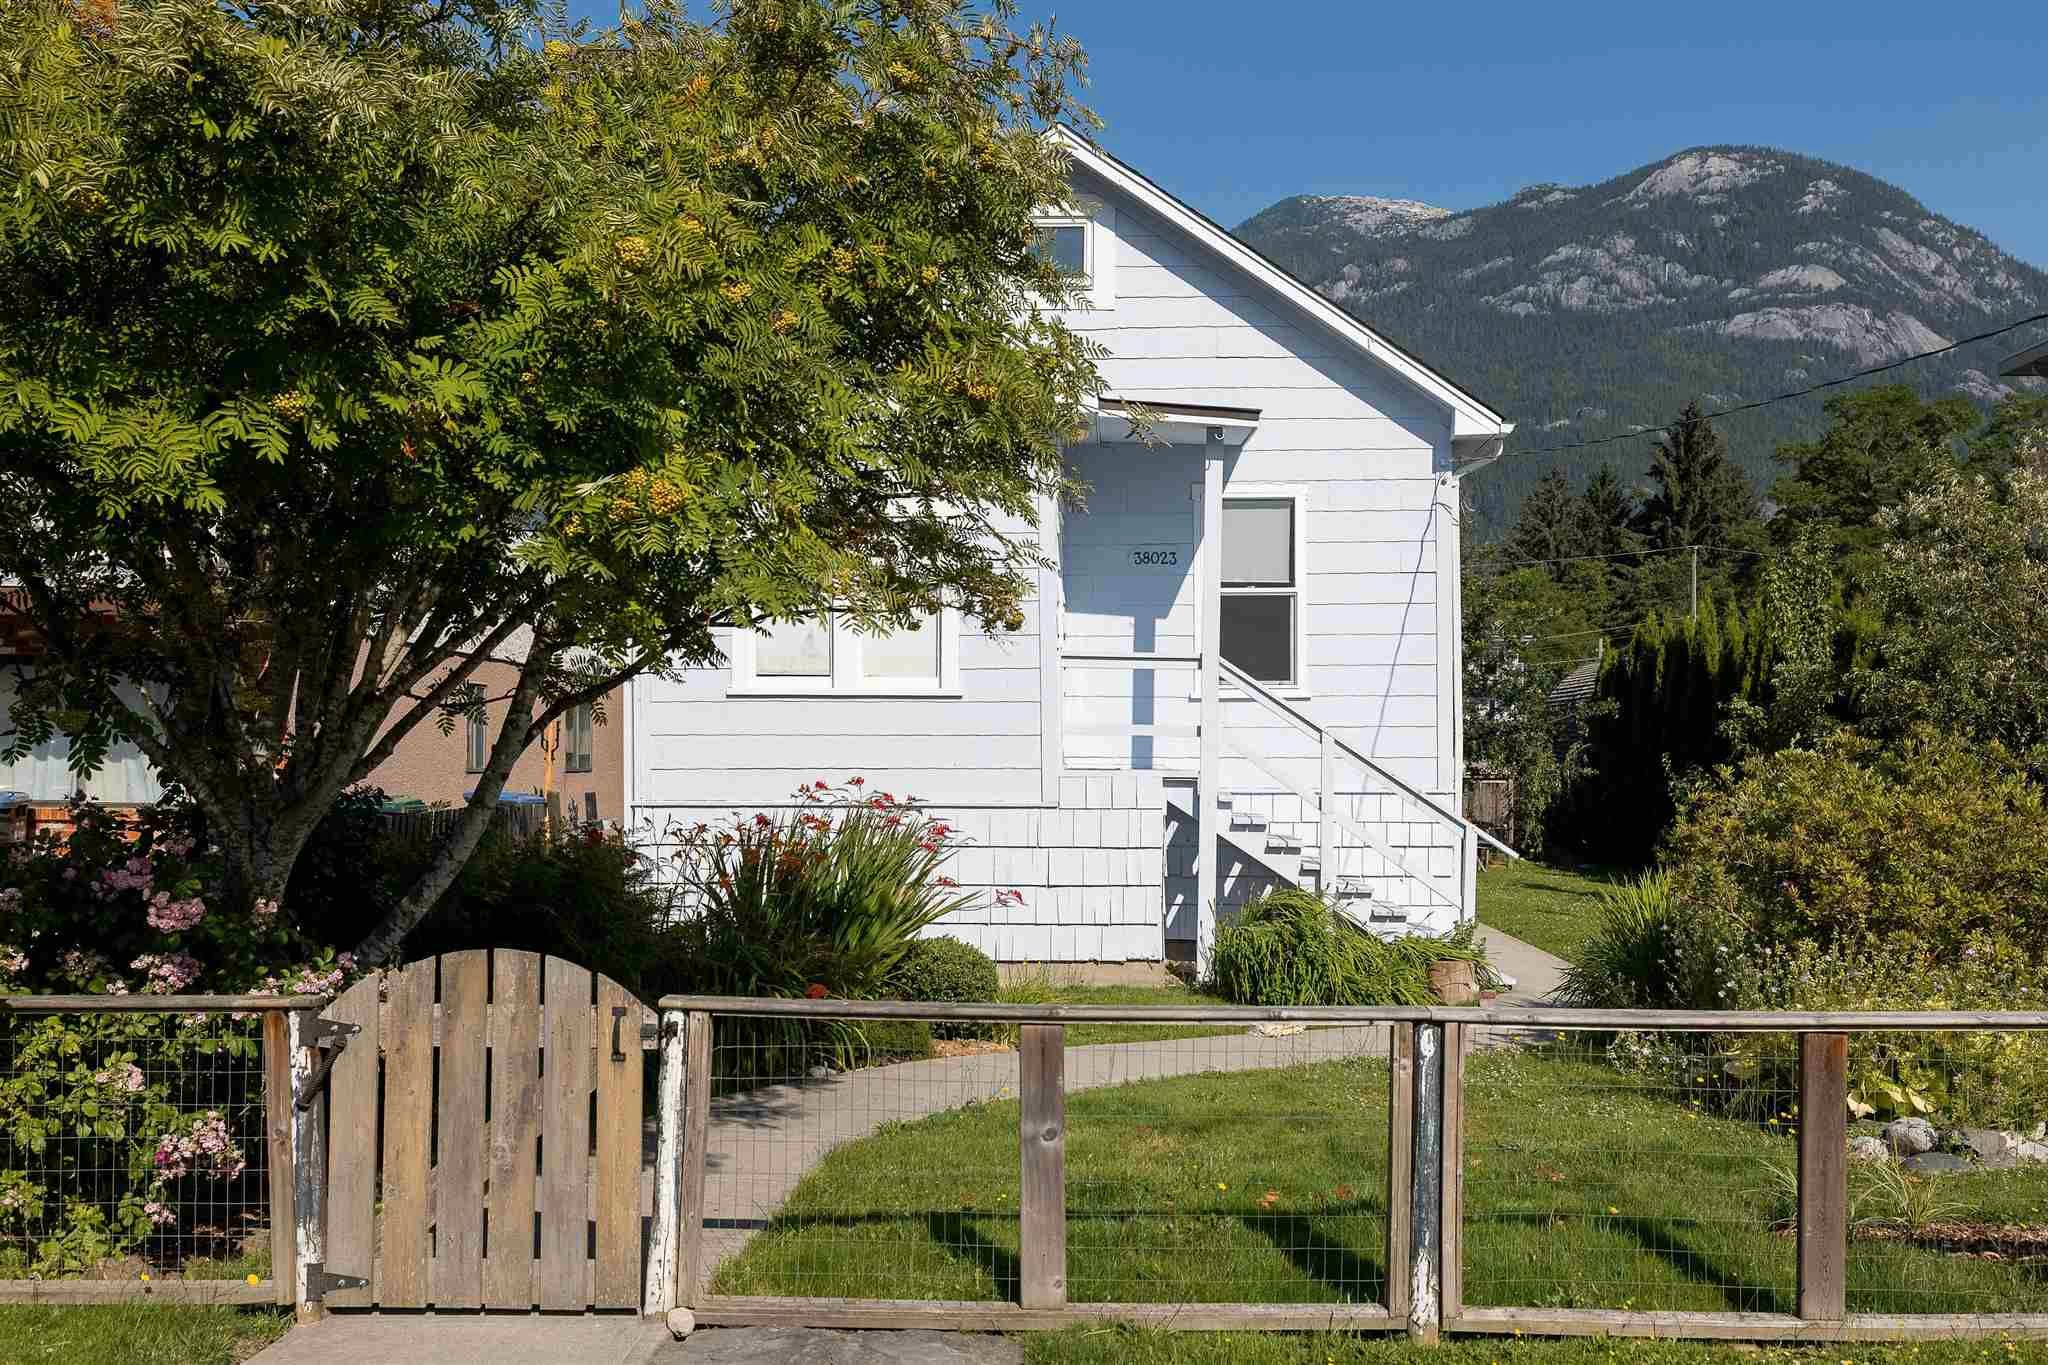 Main Photo: 38023 FIFTH Avenue in Squamish: Downtown SQ House for sale : MLS®# R2600547